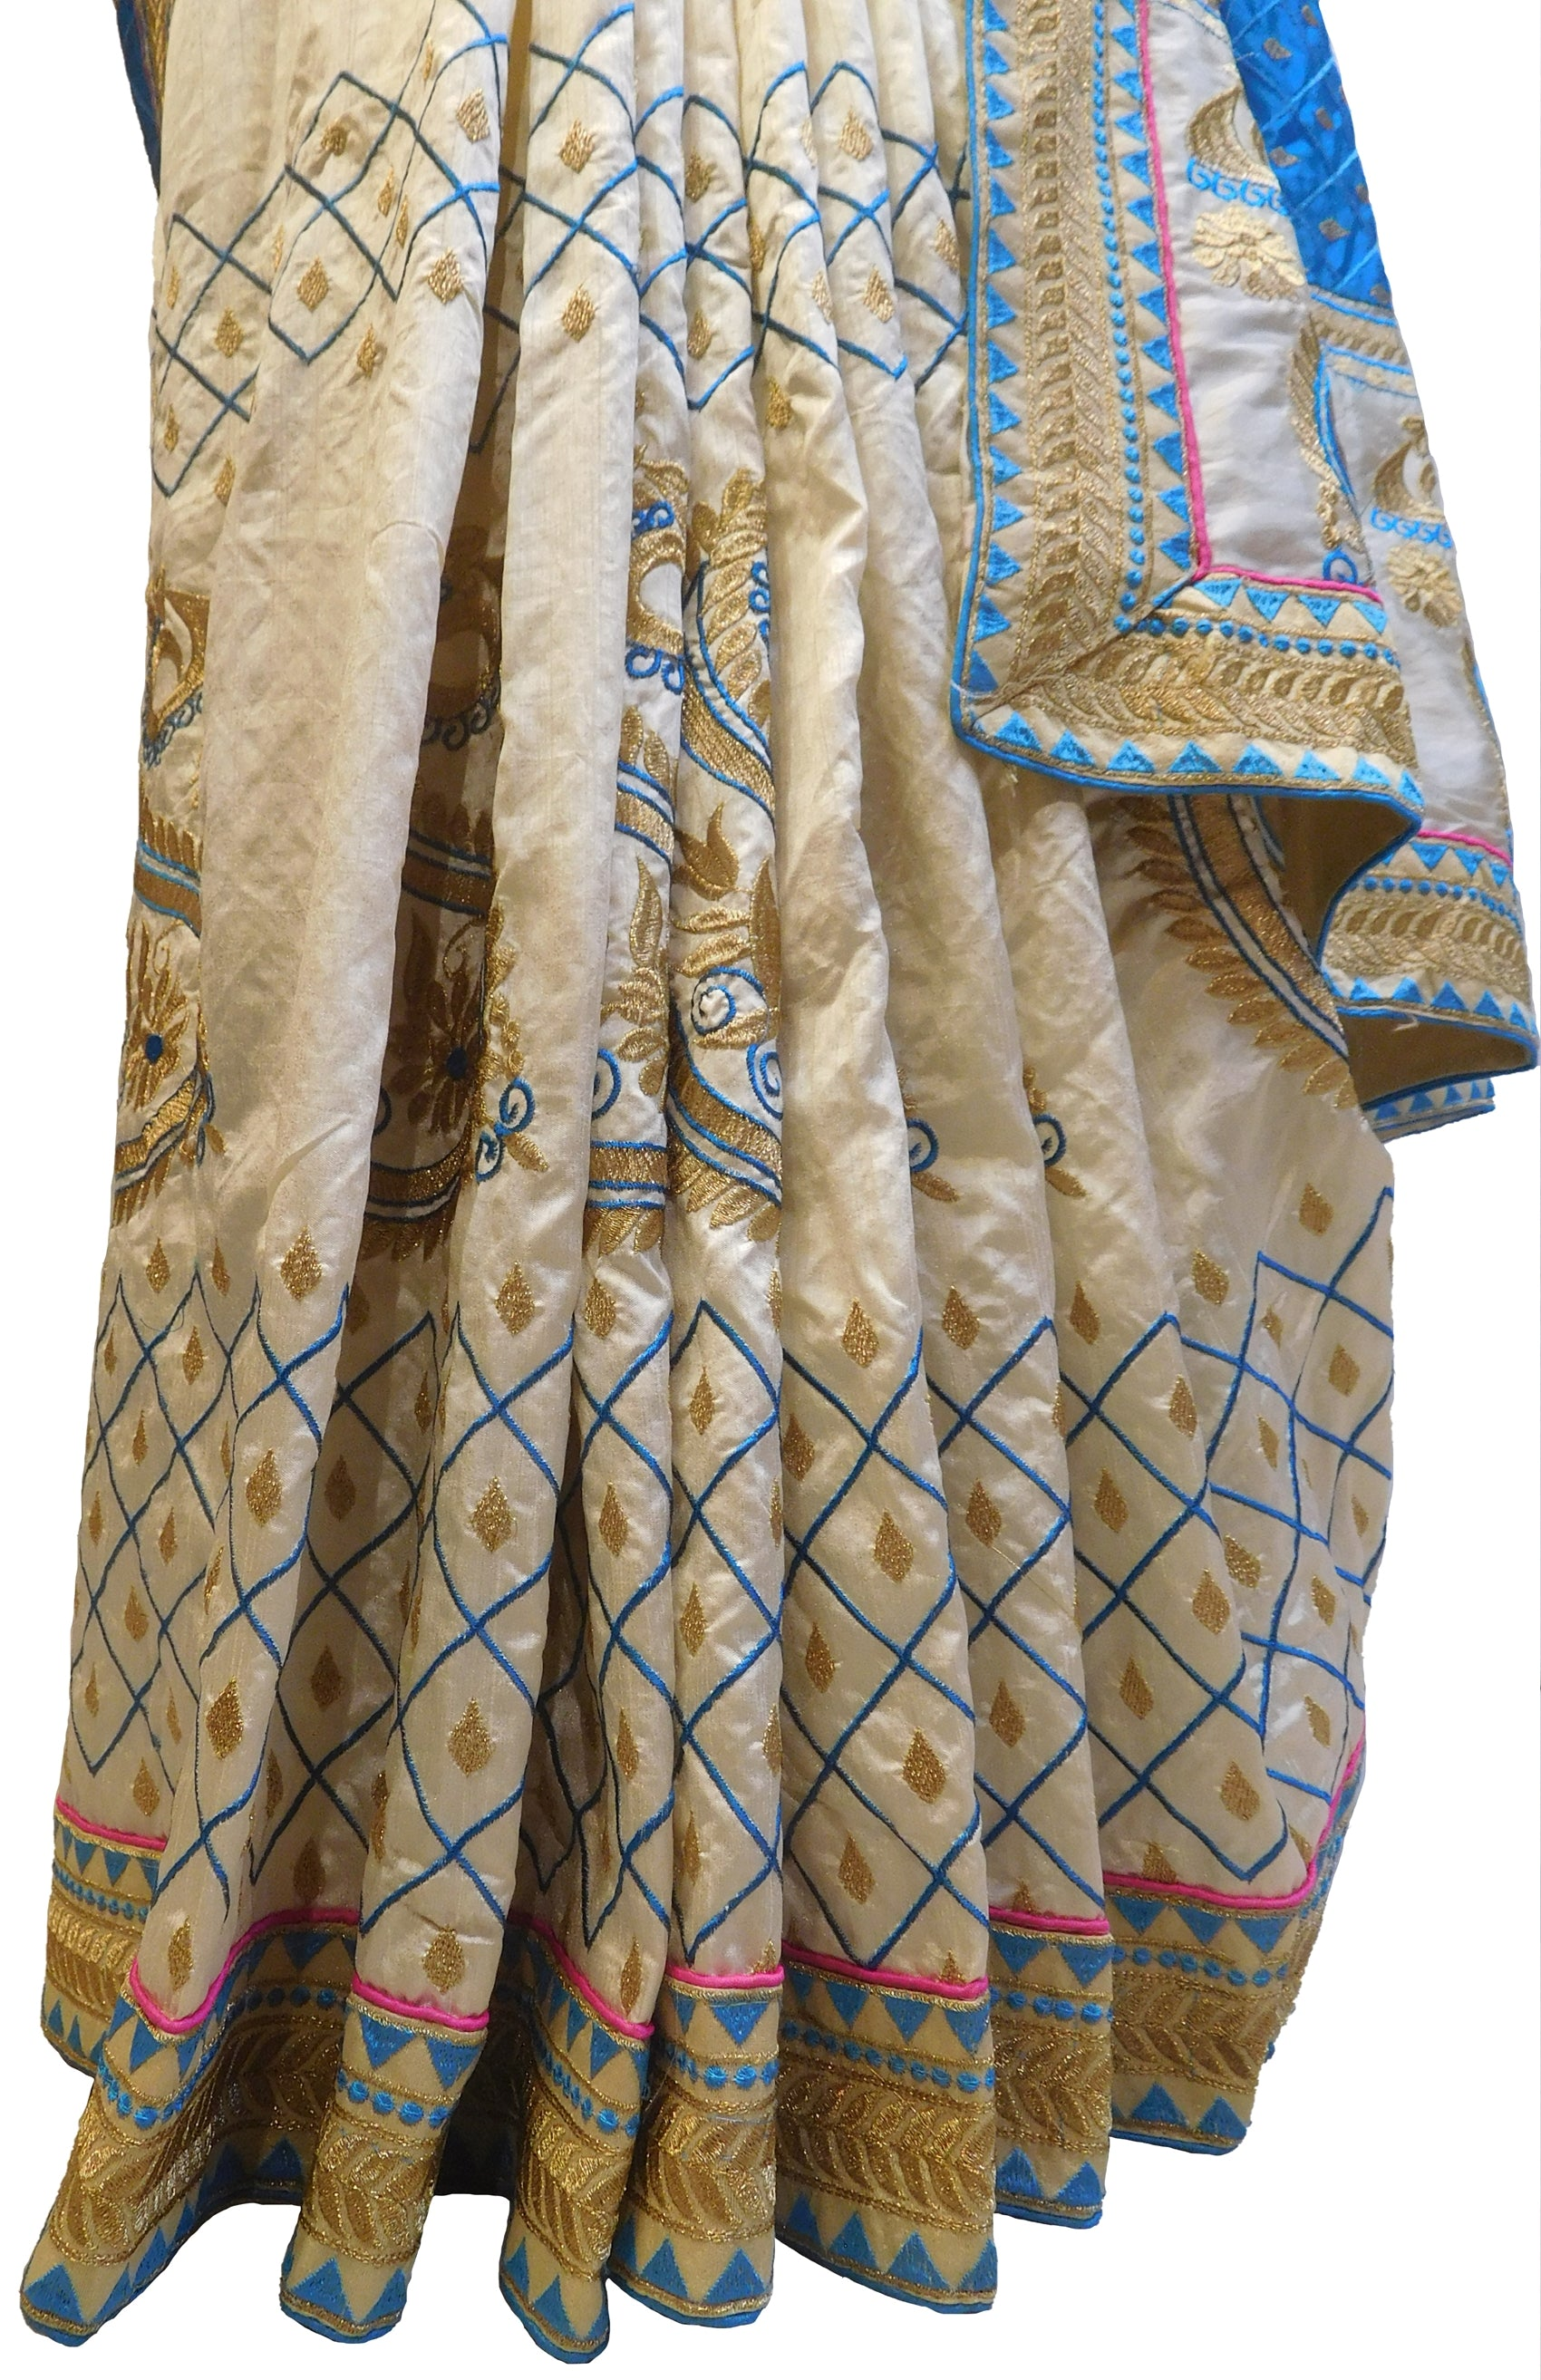 Blue & Cream Designer Wedding Partywear Silk Hand Embroidery Thread Zari Work Kolkata Saree Sari E445